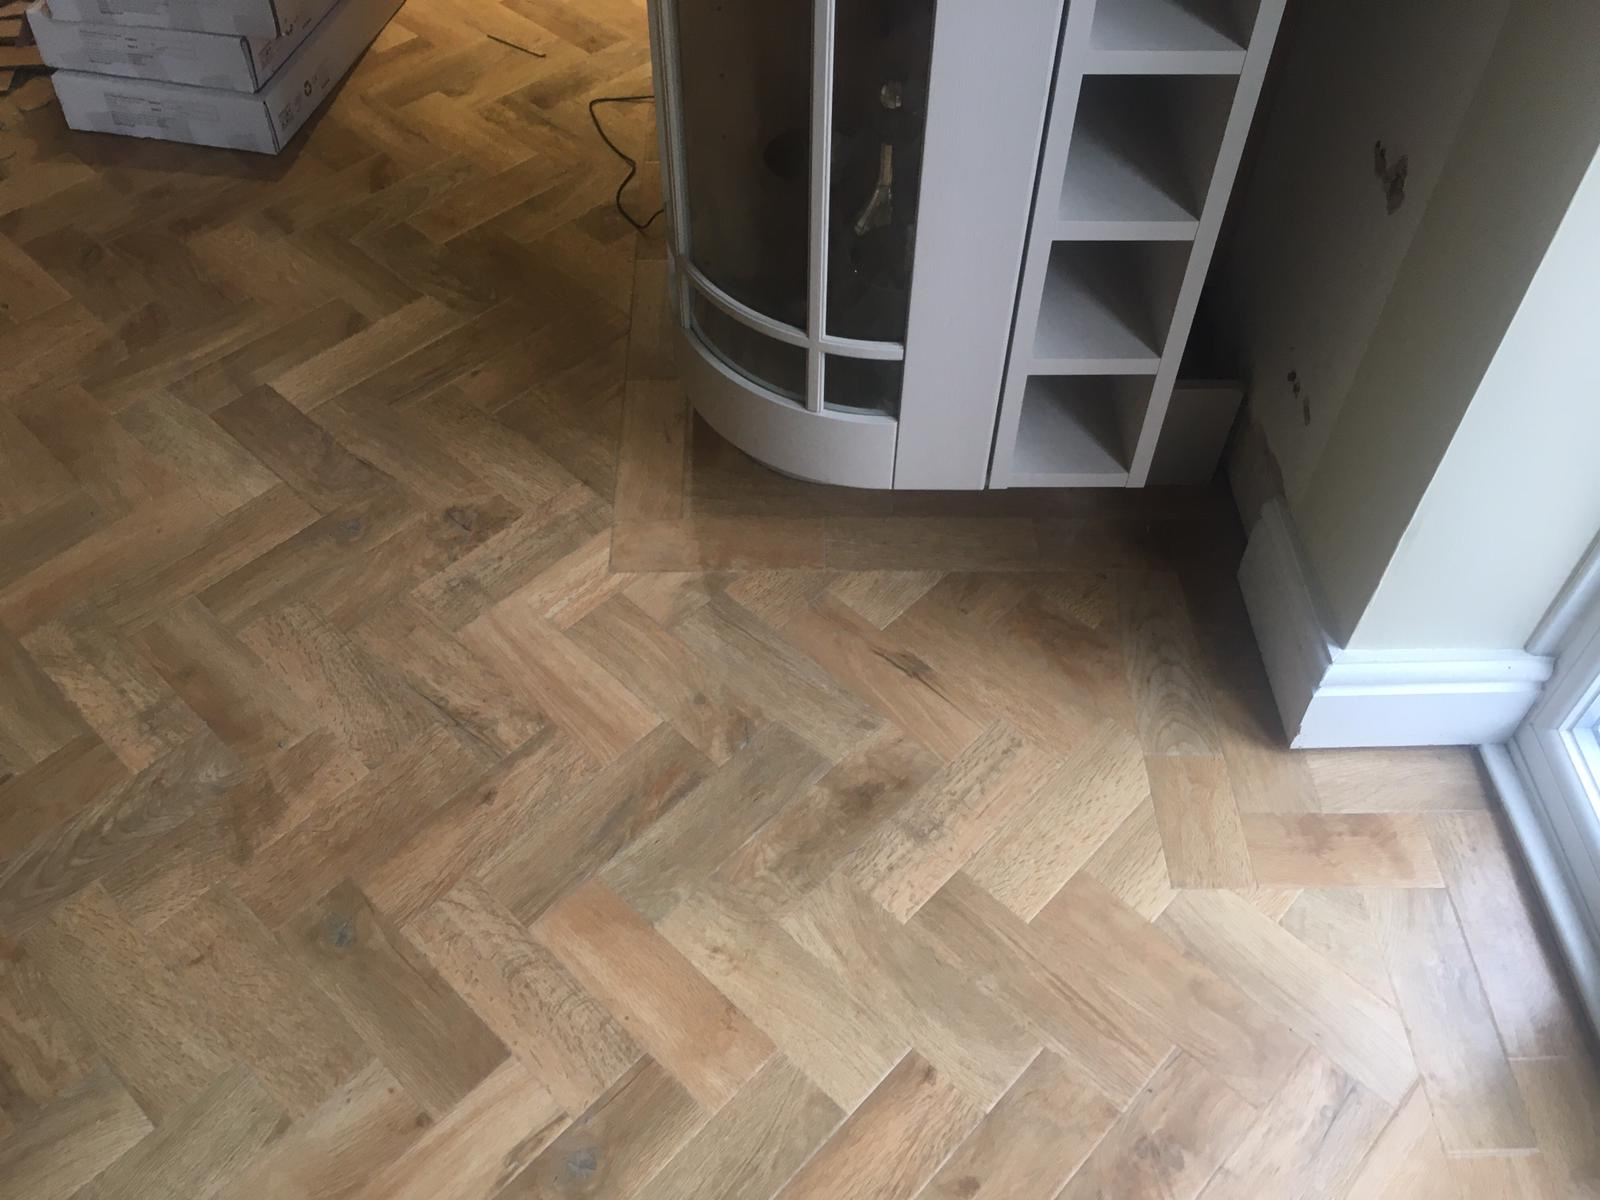 Karndean herringbone pattern with border to kitchen and family room